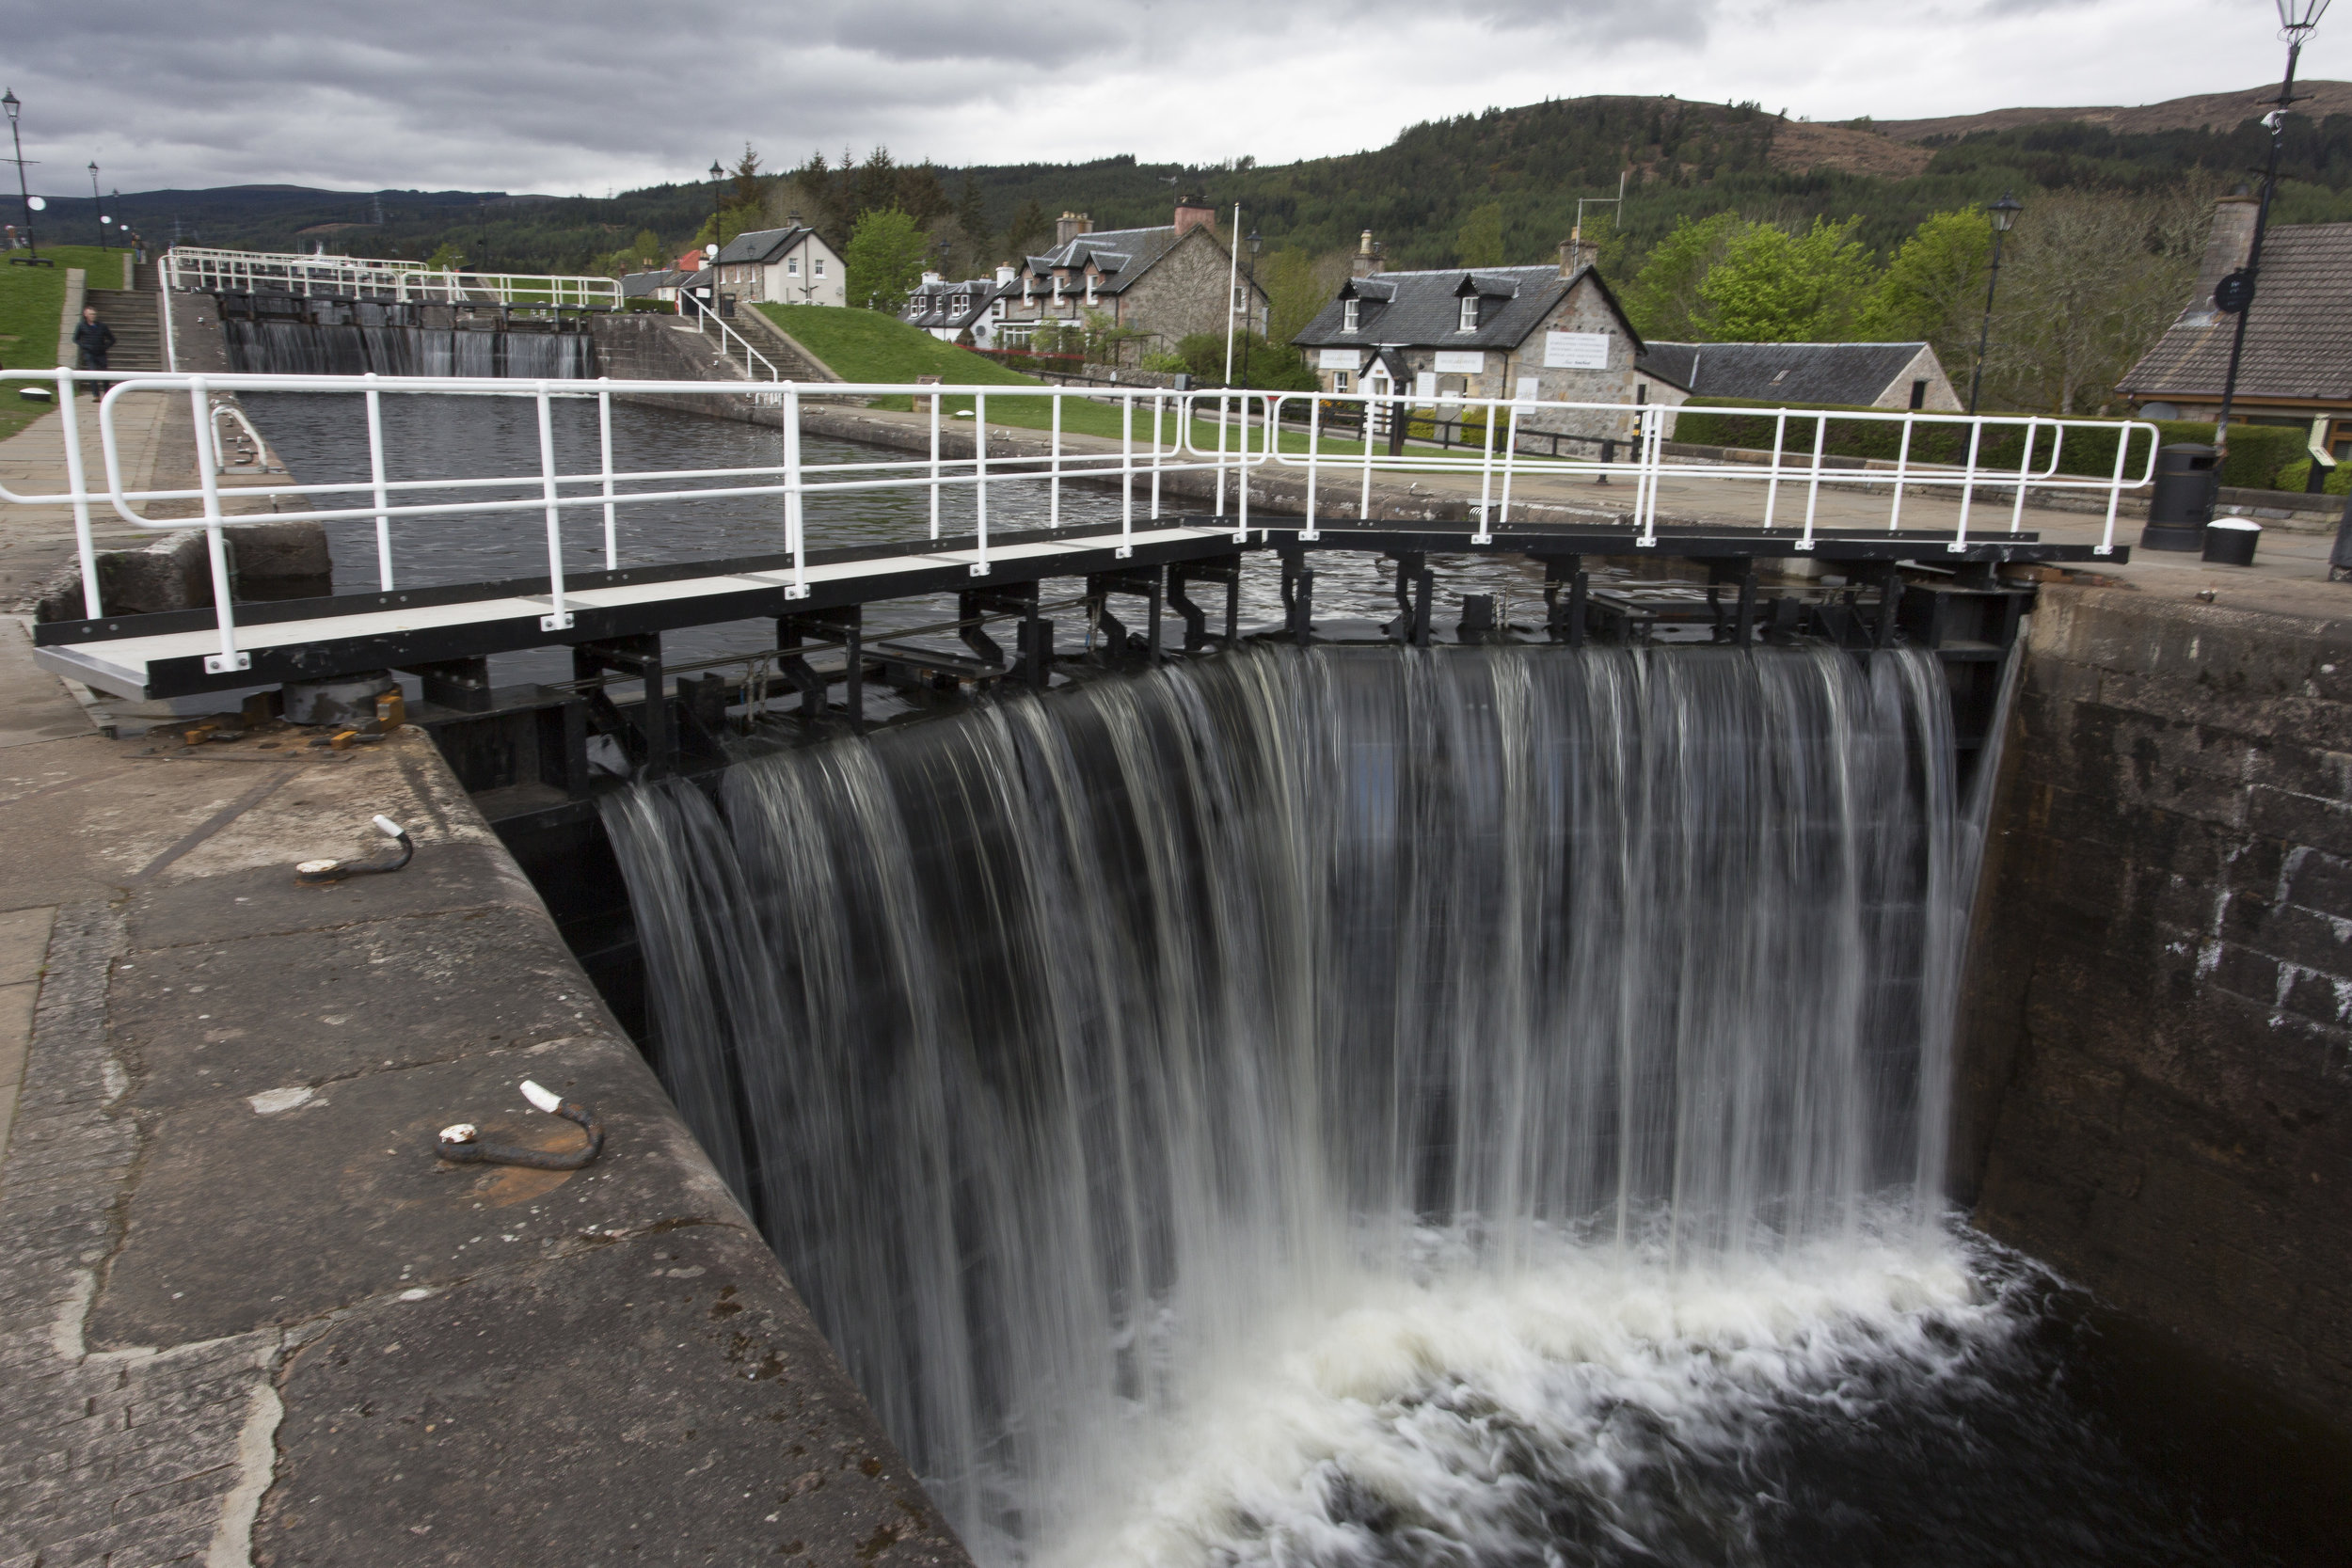 One of the 5 locks at Fort Augustus.